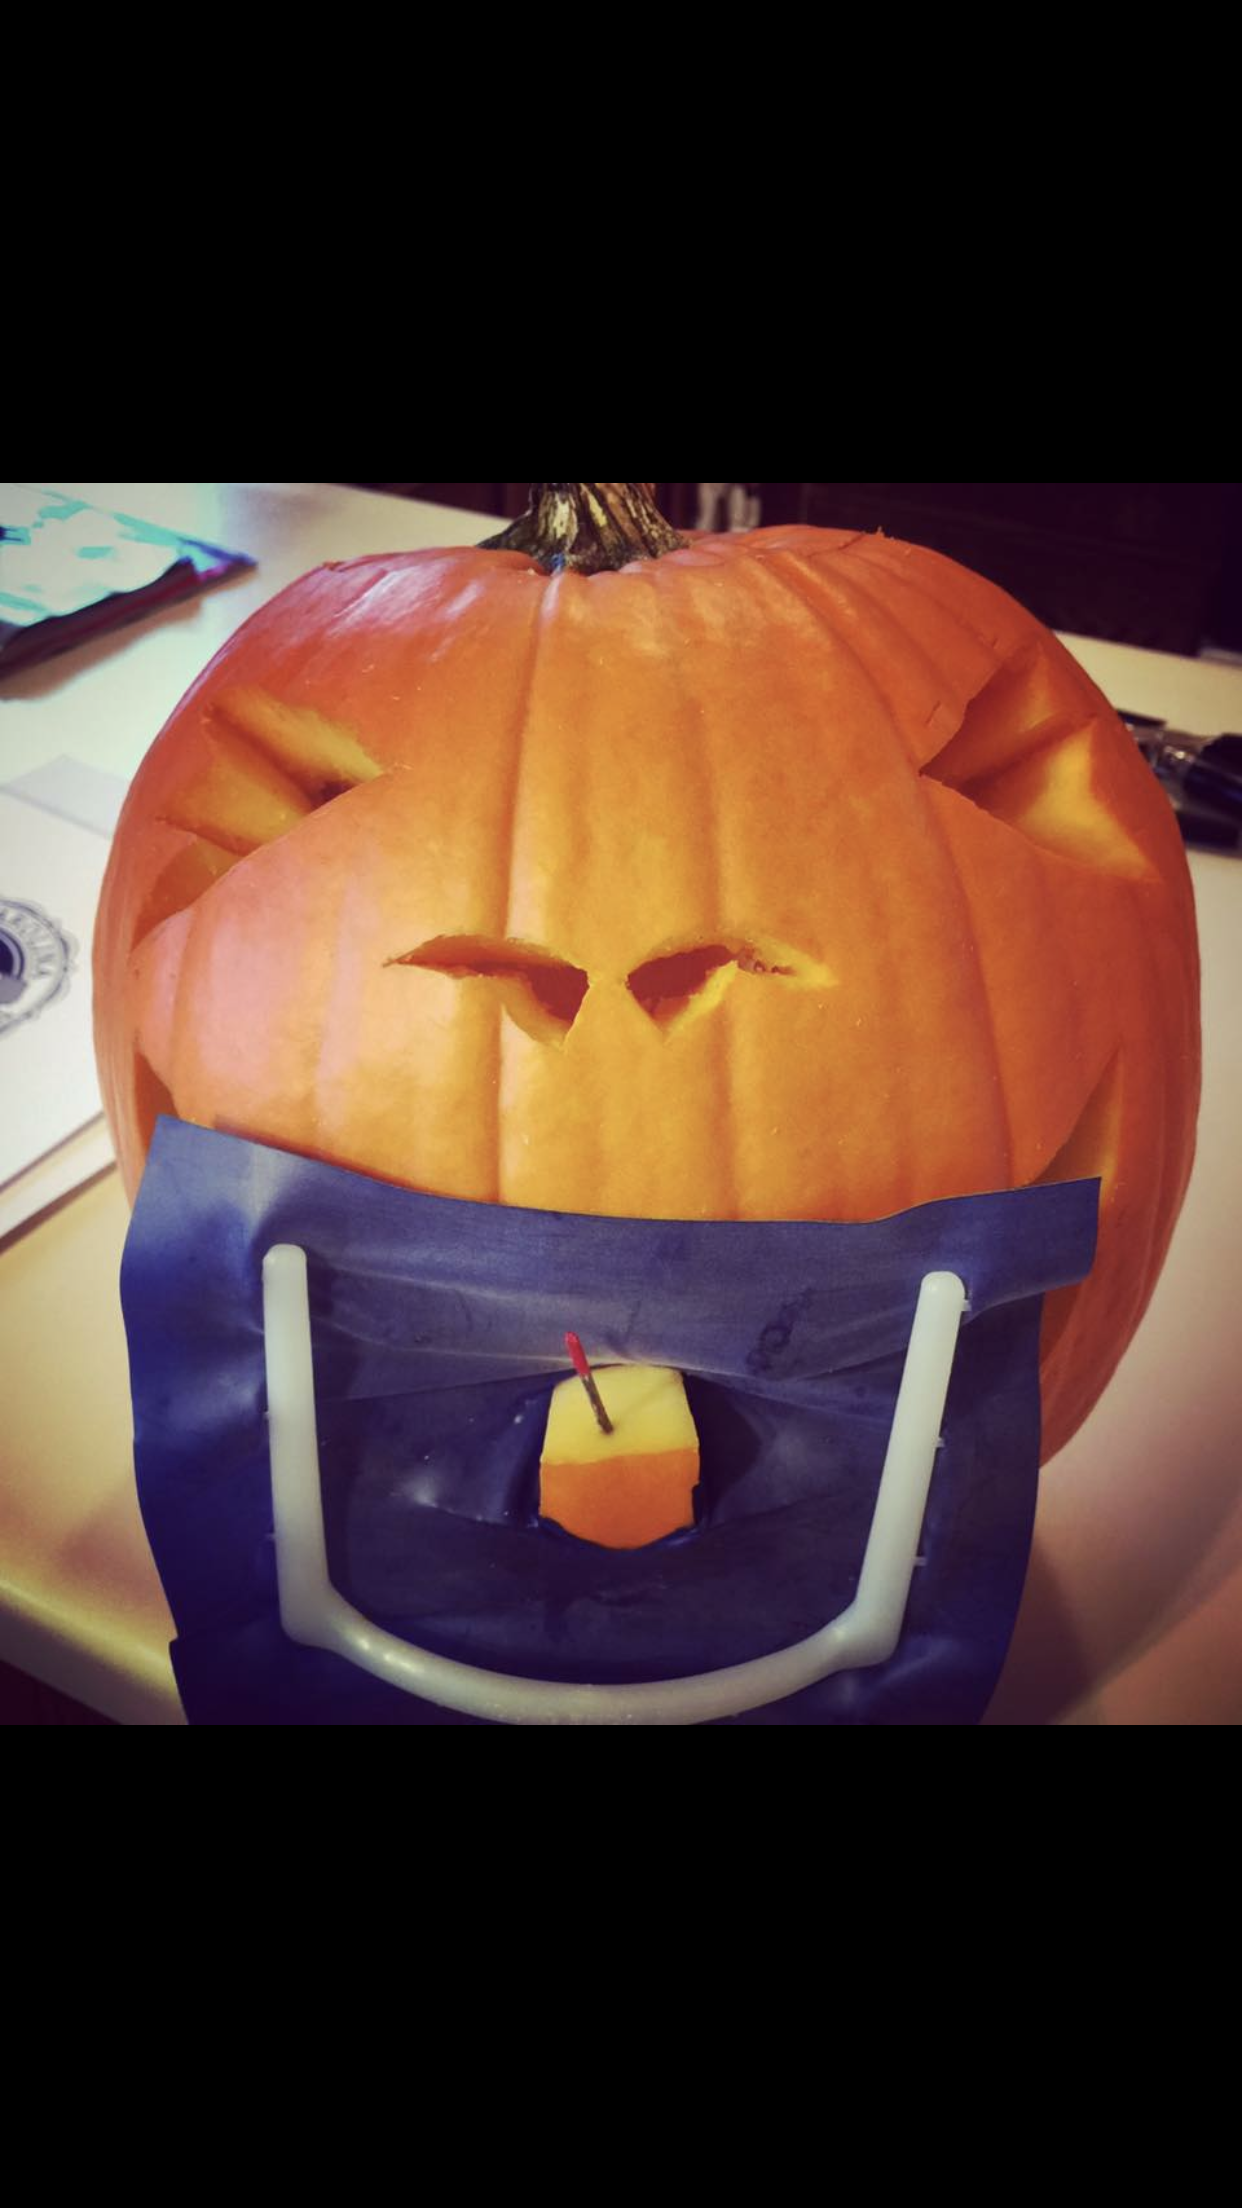 Pin by Sarah Whipp on Halloween (With images) Dental